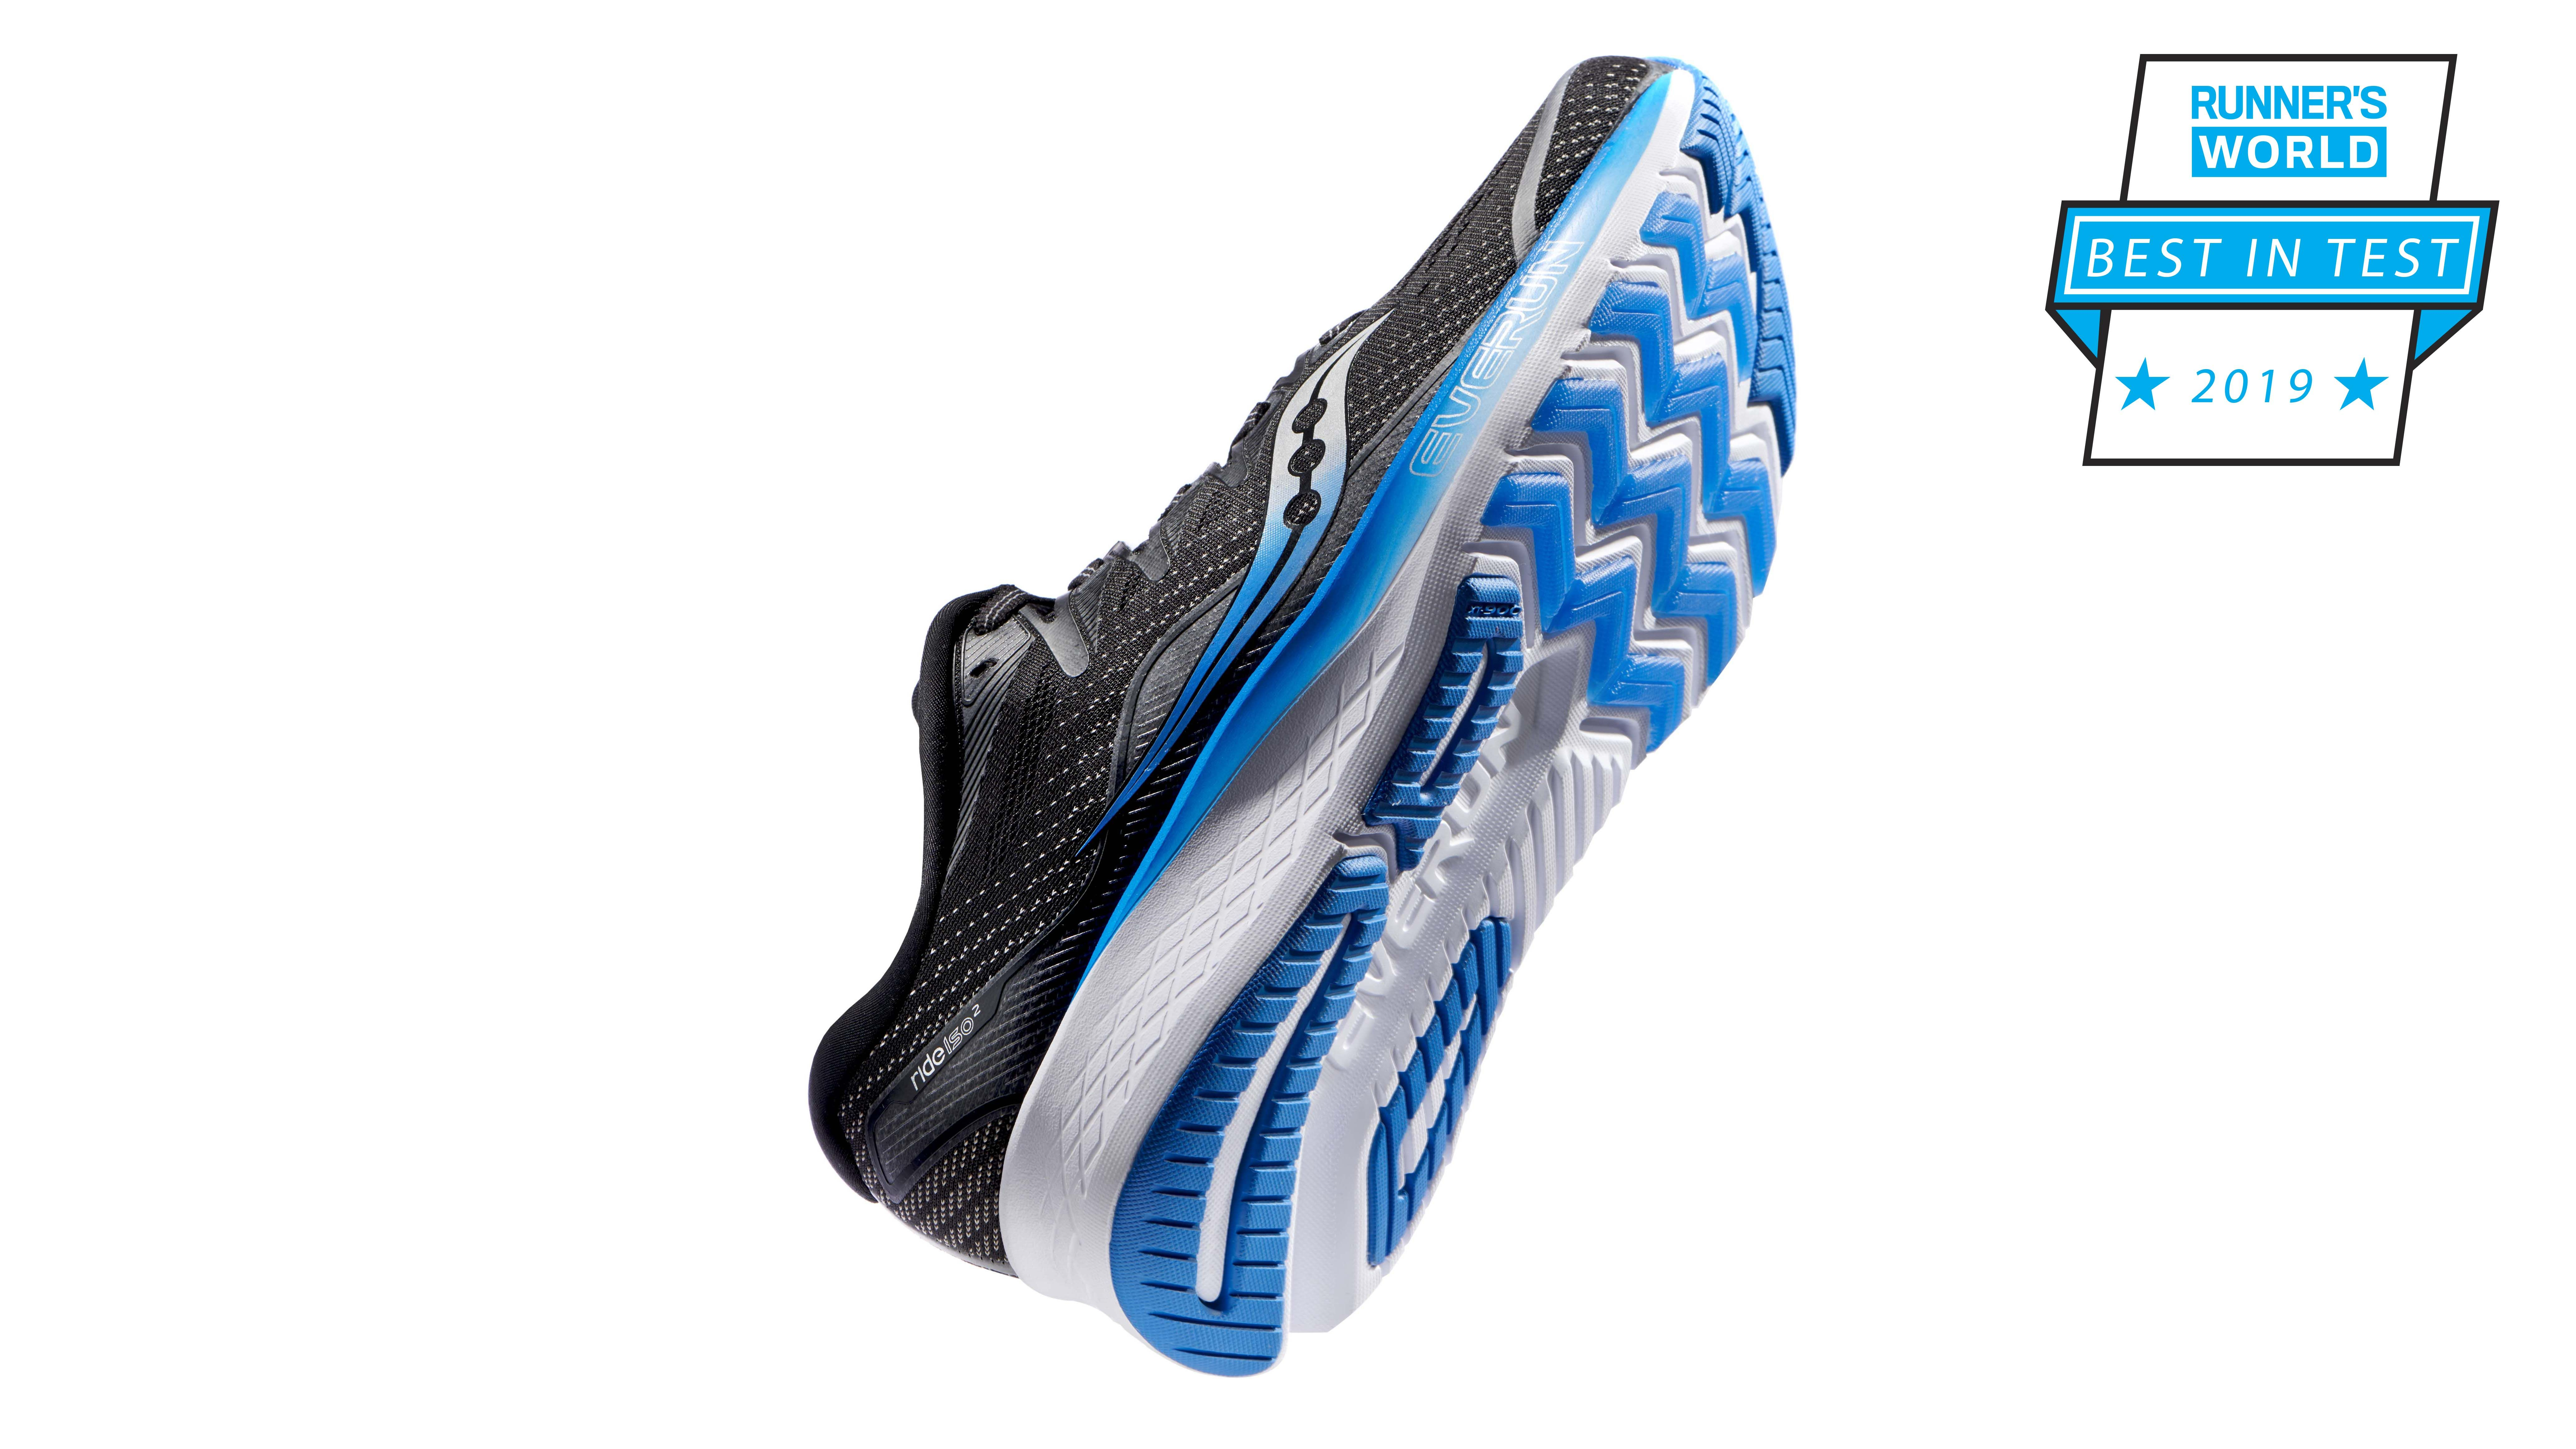 last season running shoes for men and women